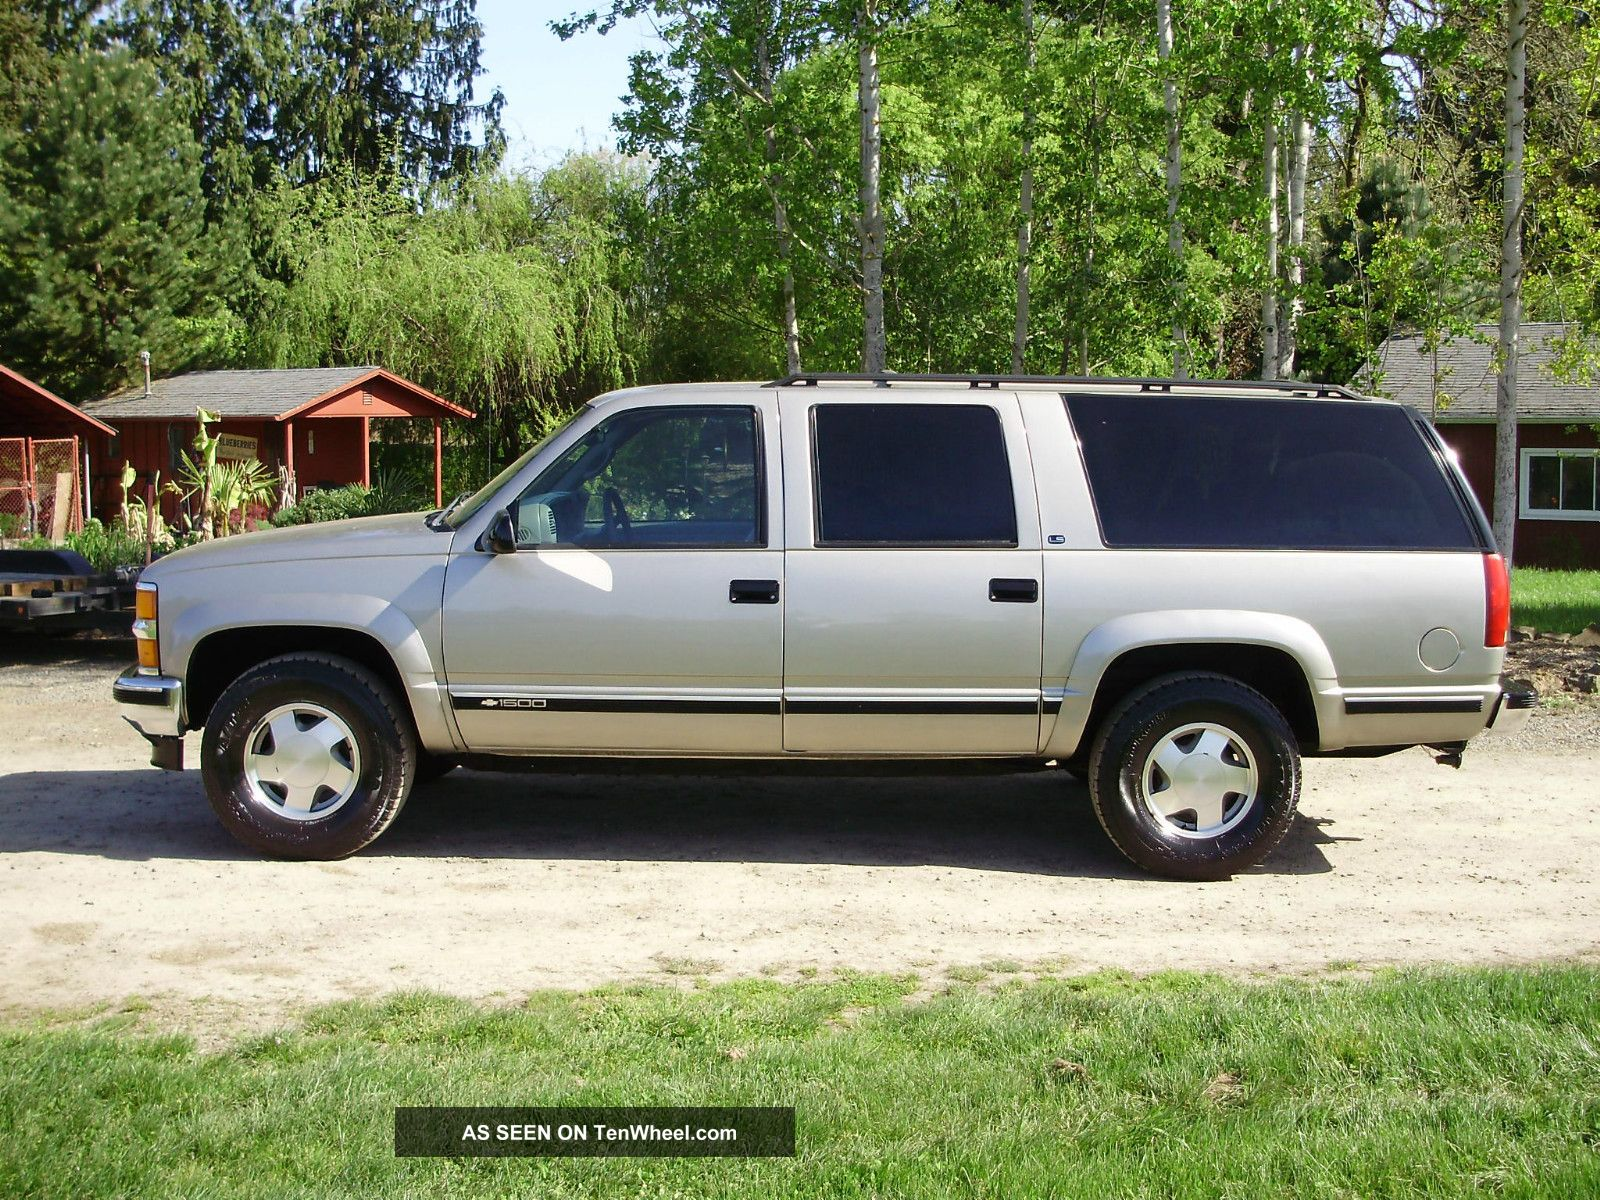 1999 chevrolet suburban ls 1500 4wd loaded rust very. Black Bedroom Furniture Sets. Home Design Ideas